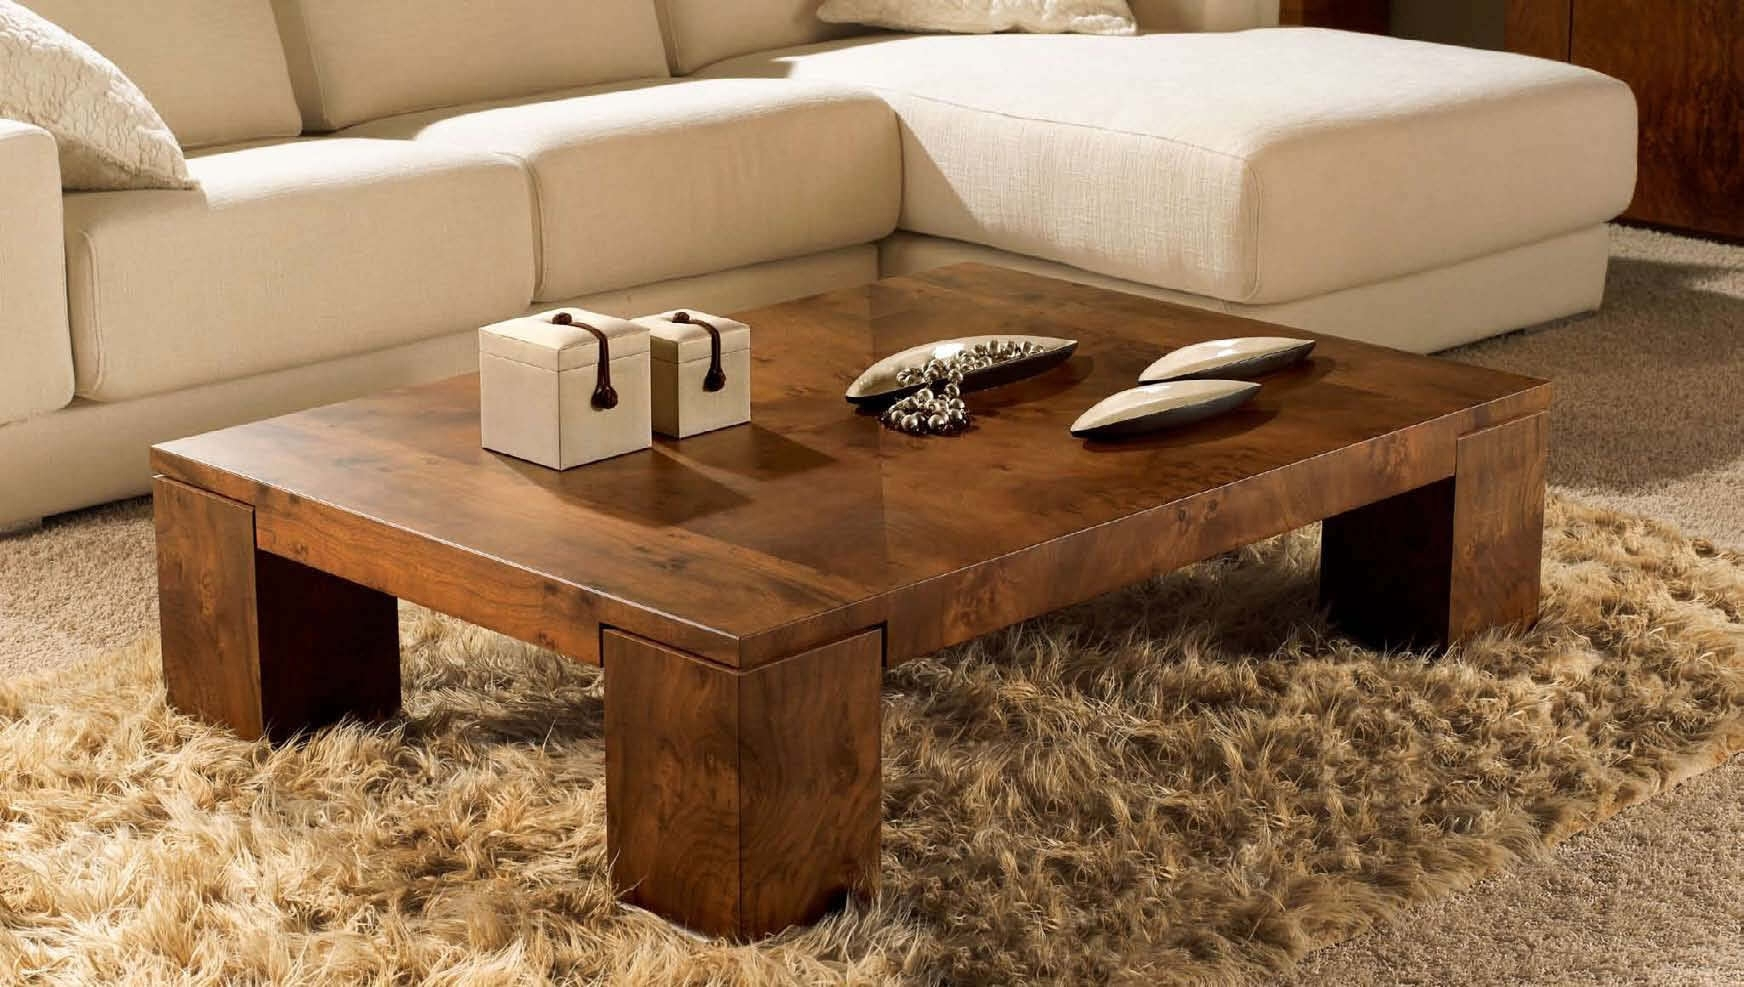 Modern Rustic Coffee Table | Gestablishment Home Ideas : Rustic inside Modern Rustic Coffee Tables (Image 16 of 30)